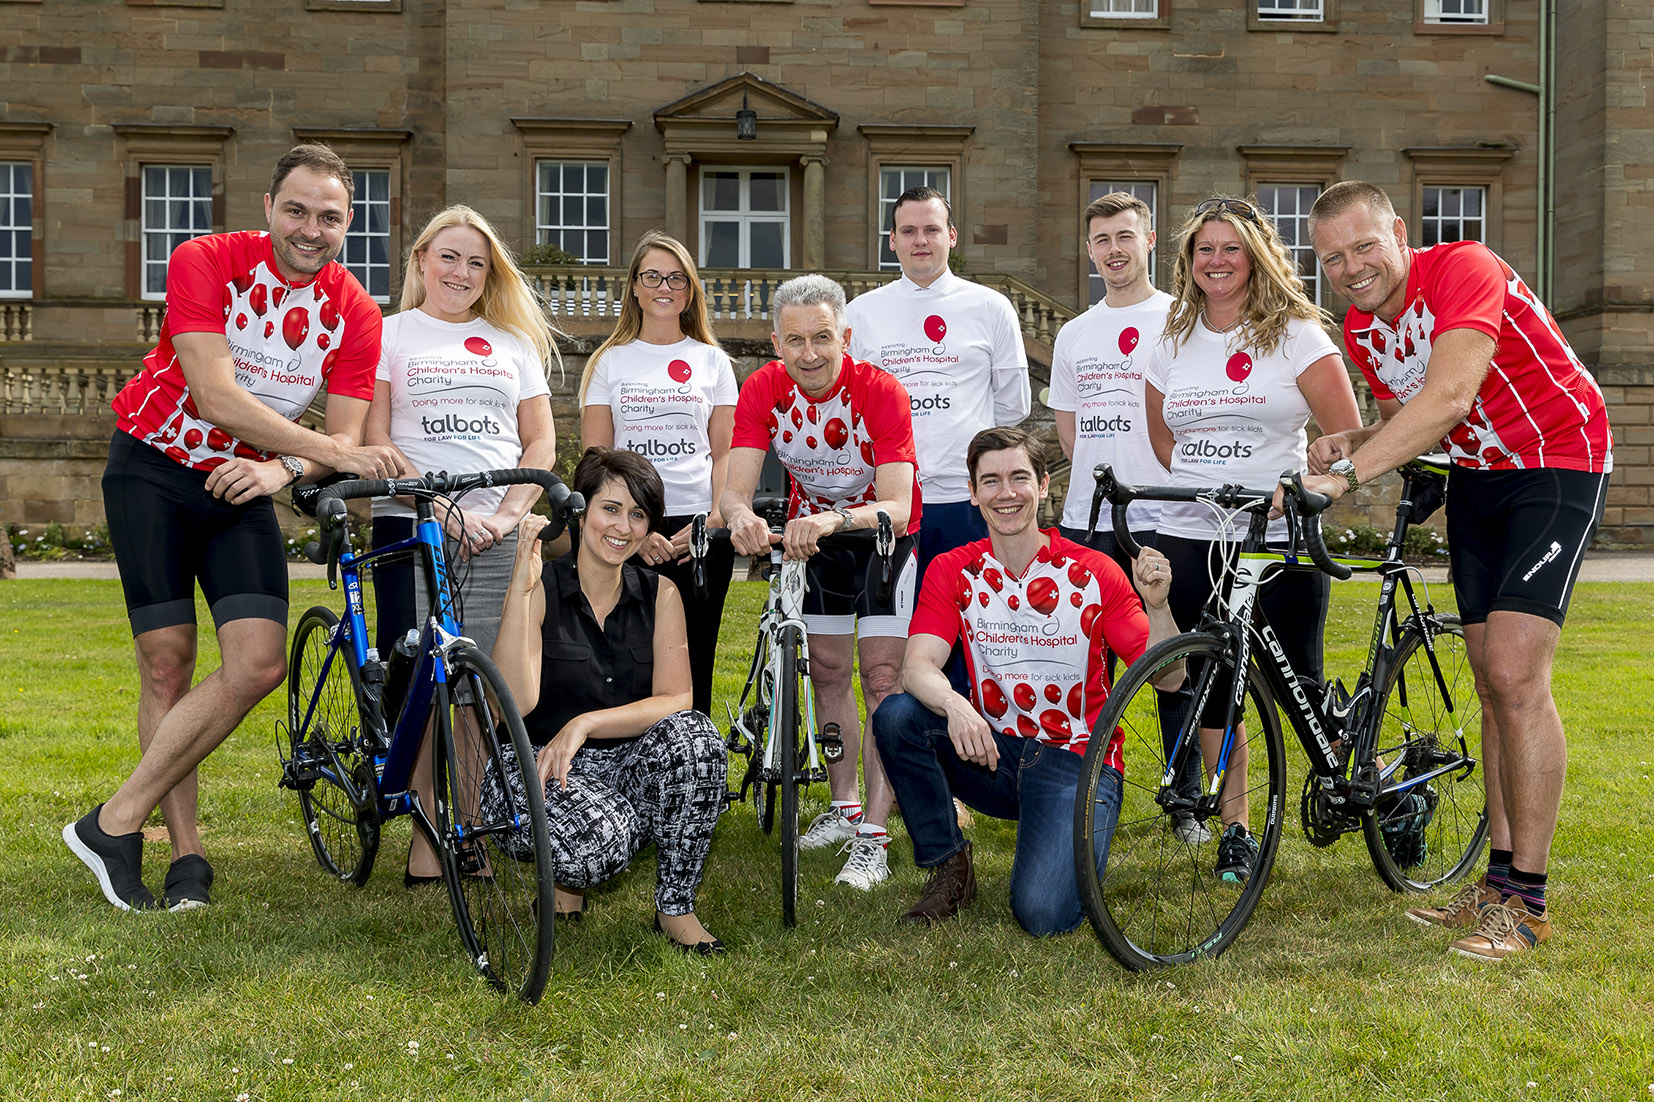 Law staff aiming to scale new heights with Birmingham Children's Hospital challenges